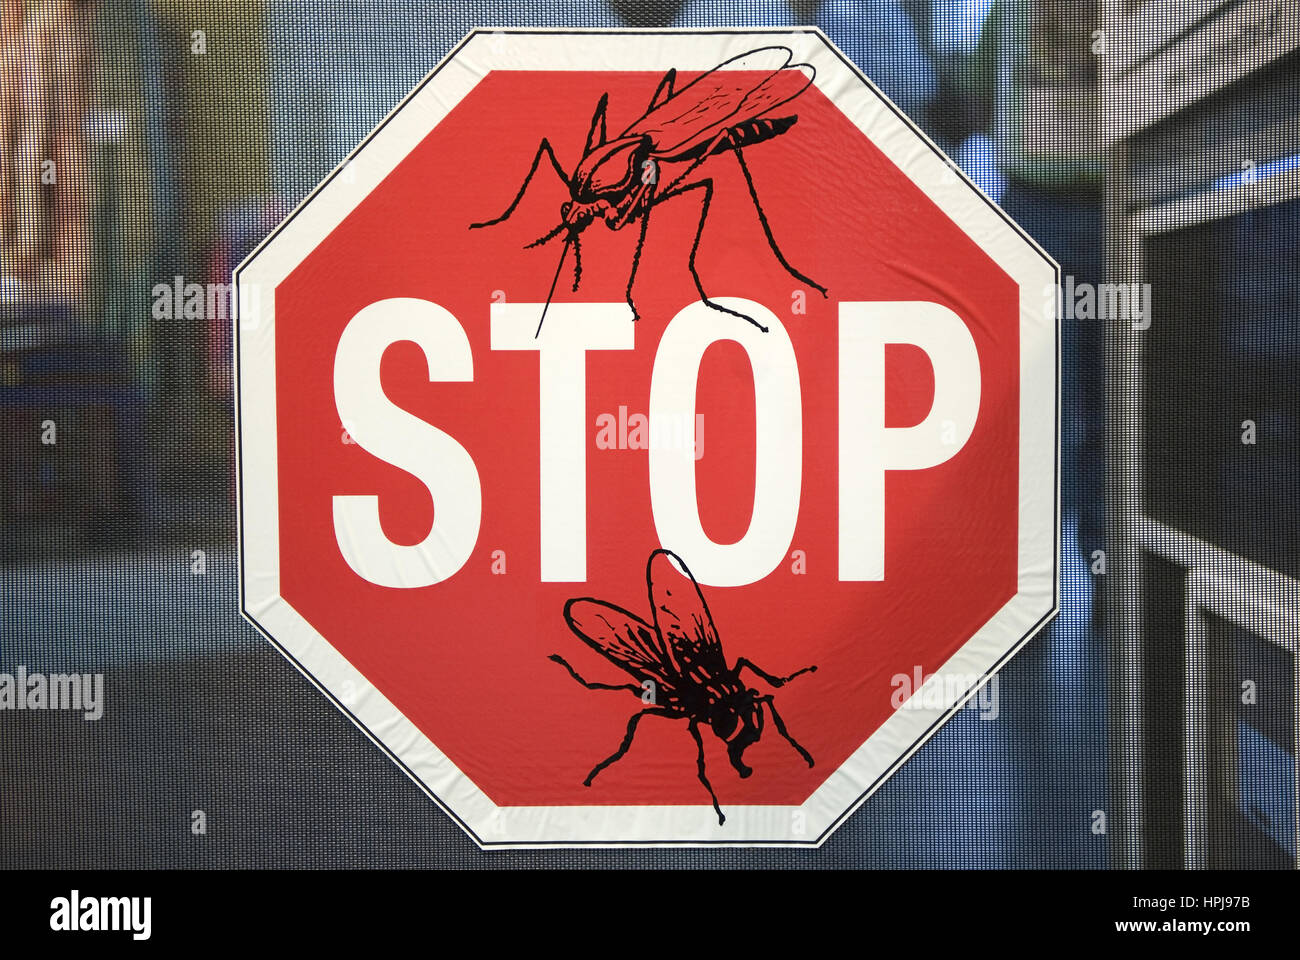 Stopschild Insekten - stop shield for insects - Stock Image